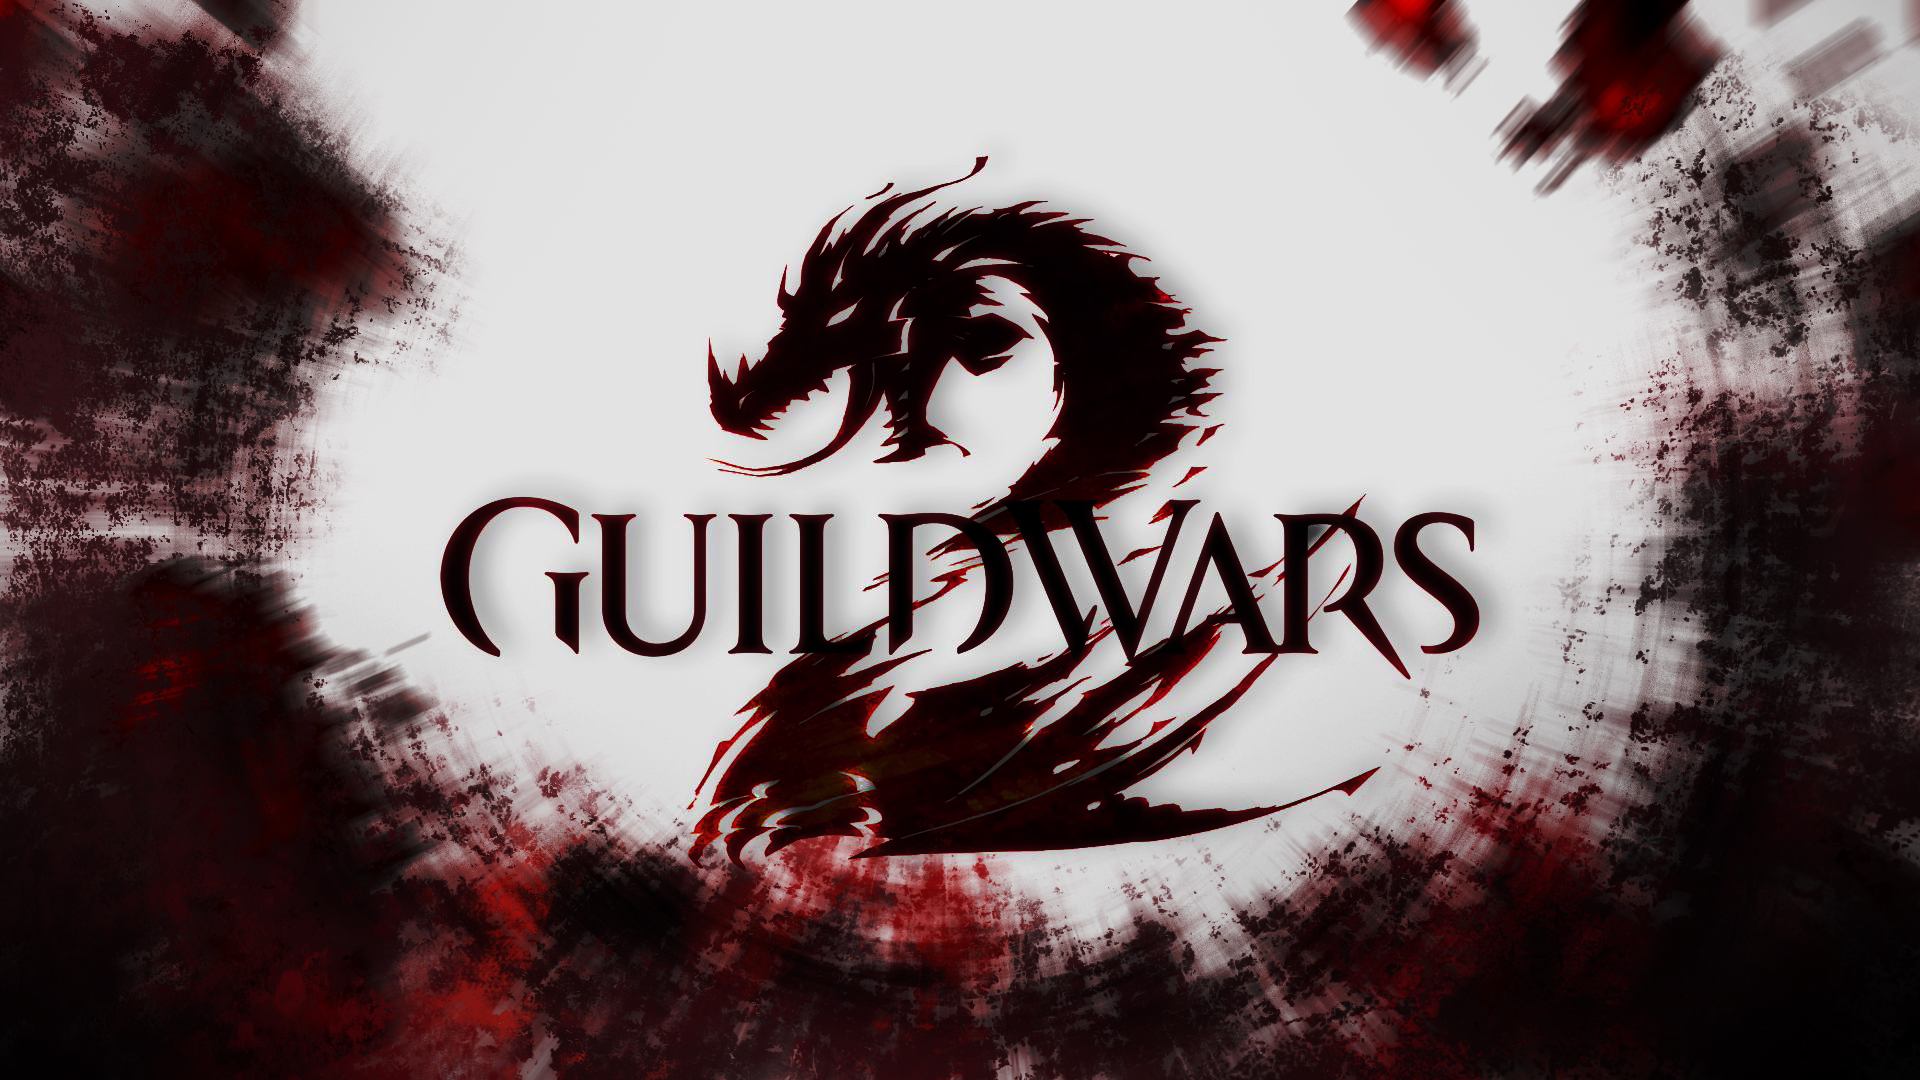 guild wars wallpapers wallpaper gallery images 1920x1080 1920x1080